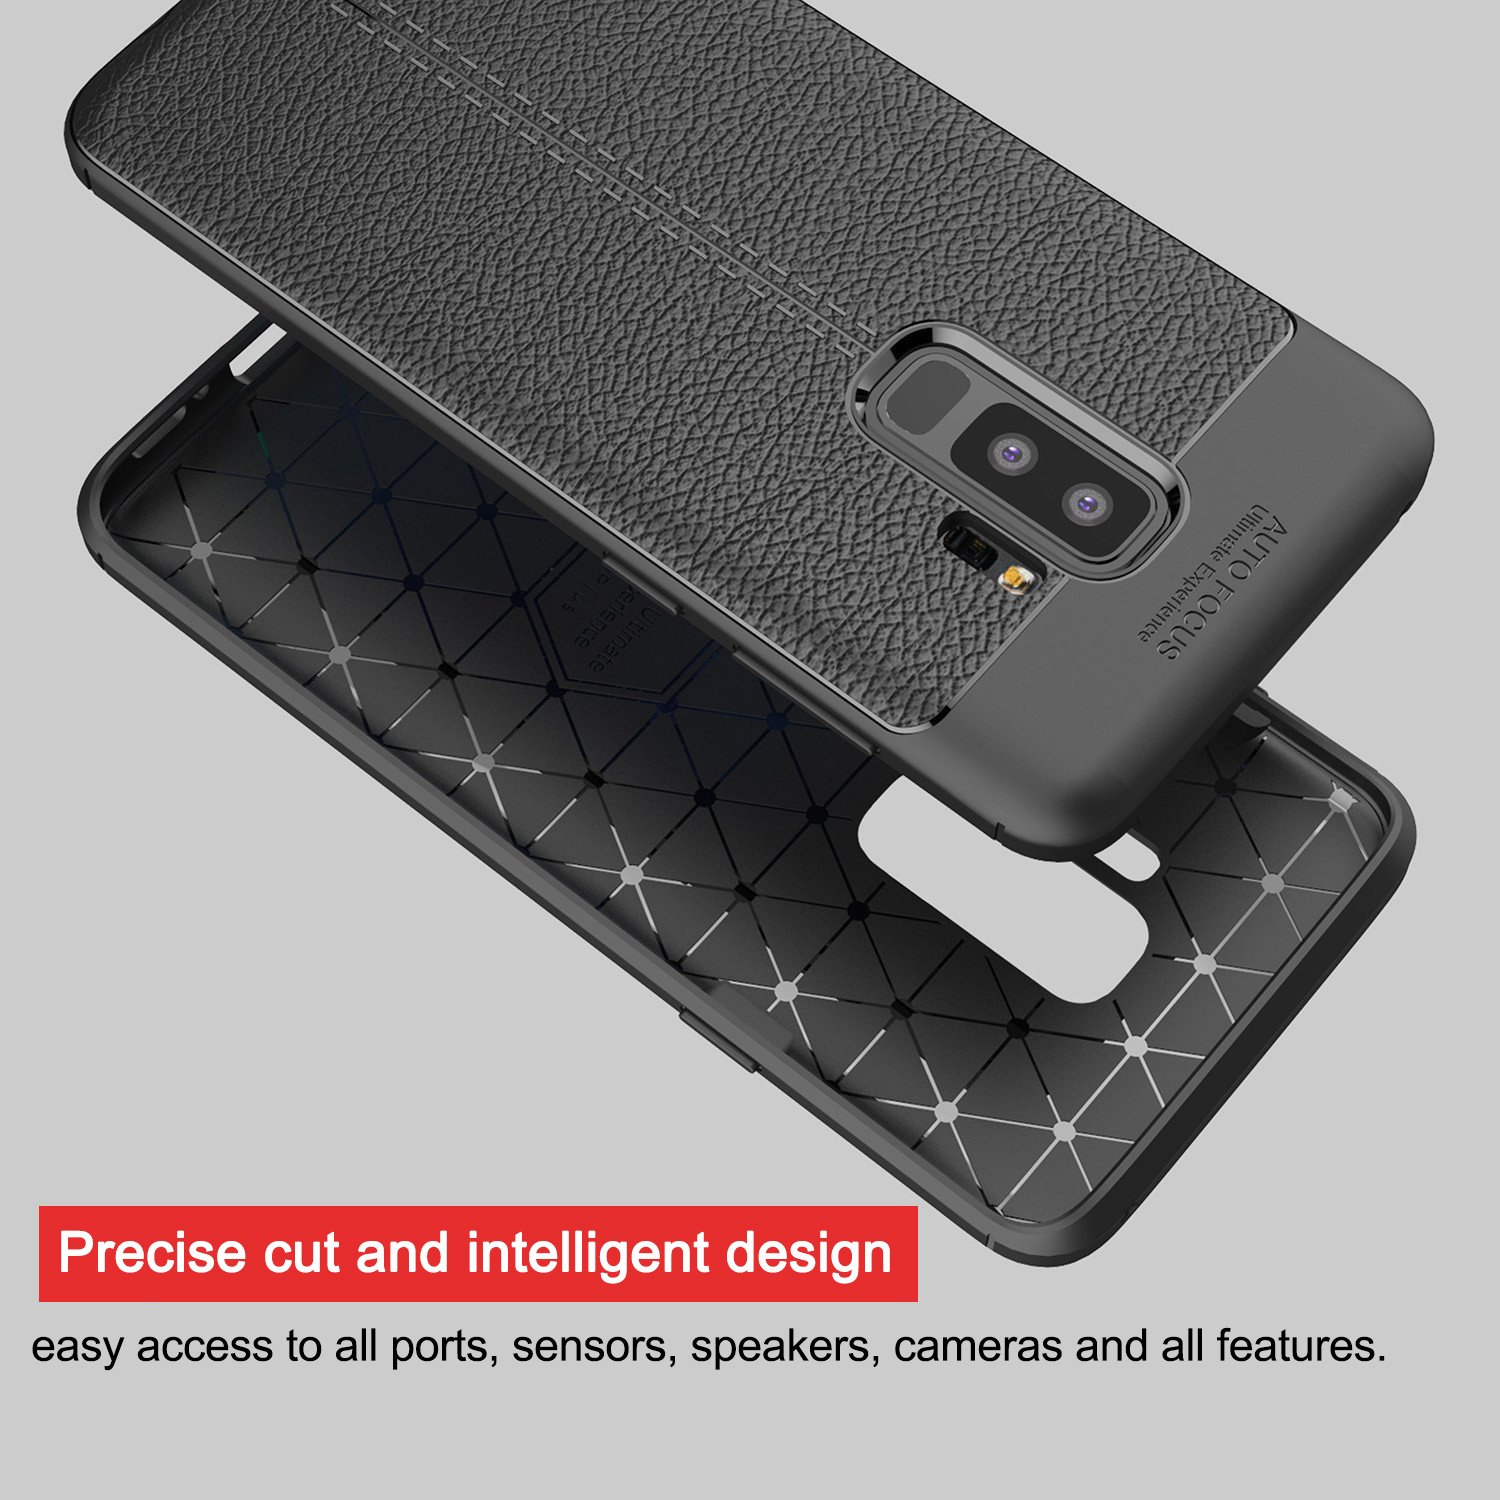 Samsung Galaxy S9 Plus Soft Case, PRODELI Ultra Slim Flexible Leather TPU Protective Case Cover Shockproof,Anti-Scratch,Easy Grip,Full Protective Case for Galaxy S9+(Black)